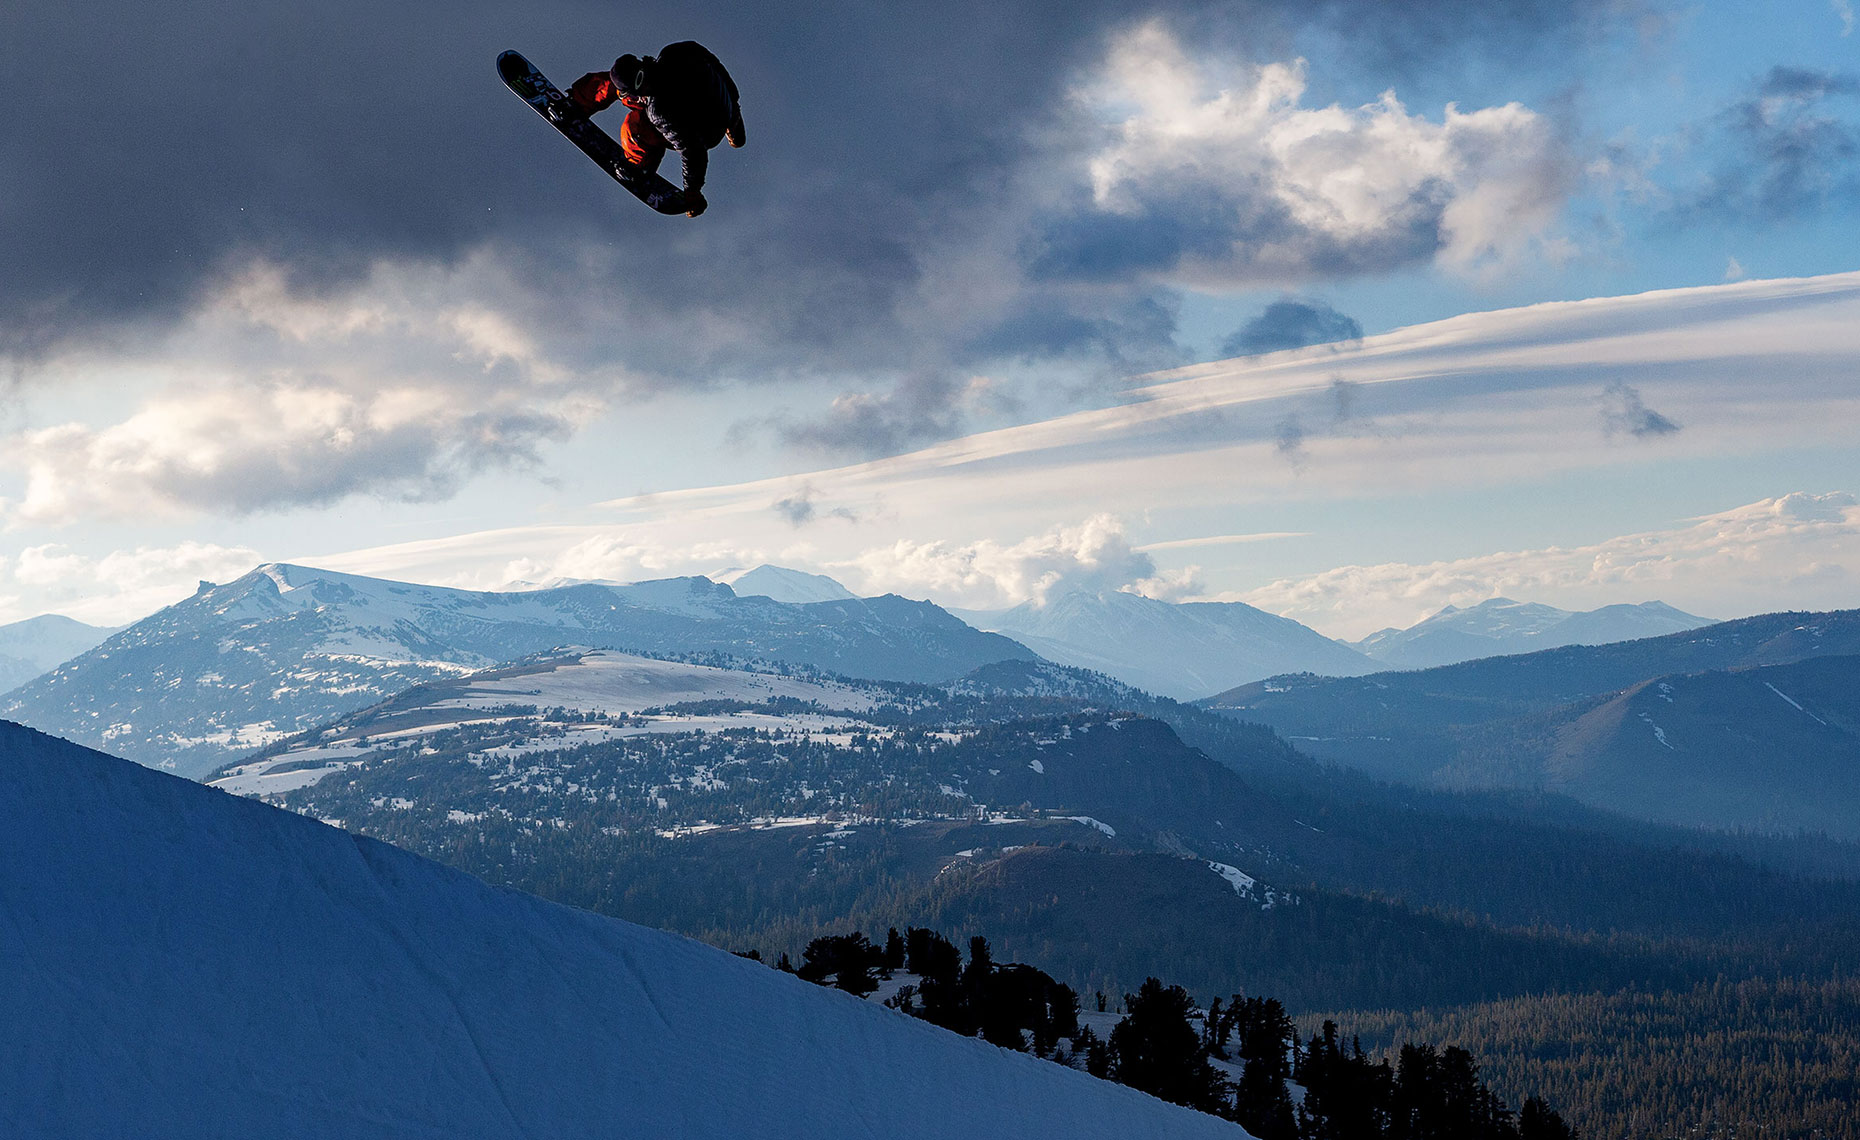 Ayumu Hirano. Mammoth Mountain, California. Photo: Chris Wellhausen